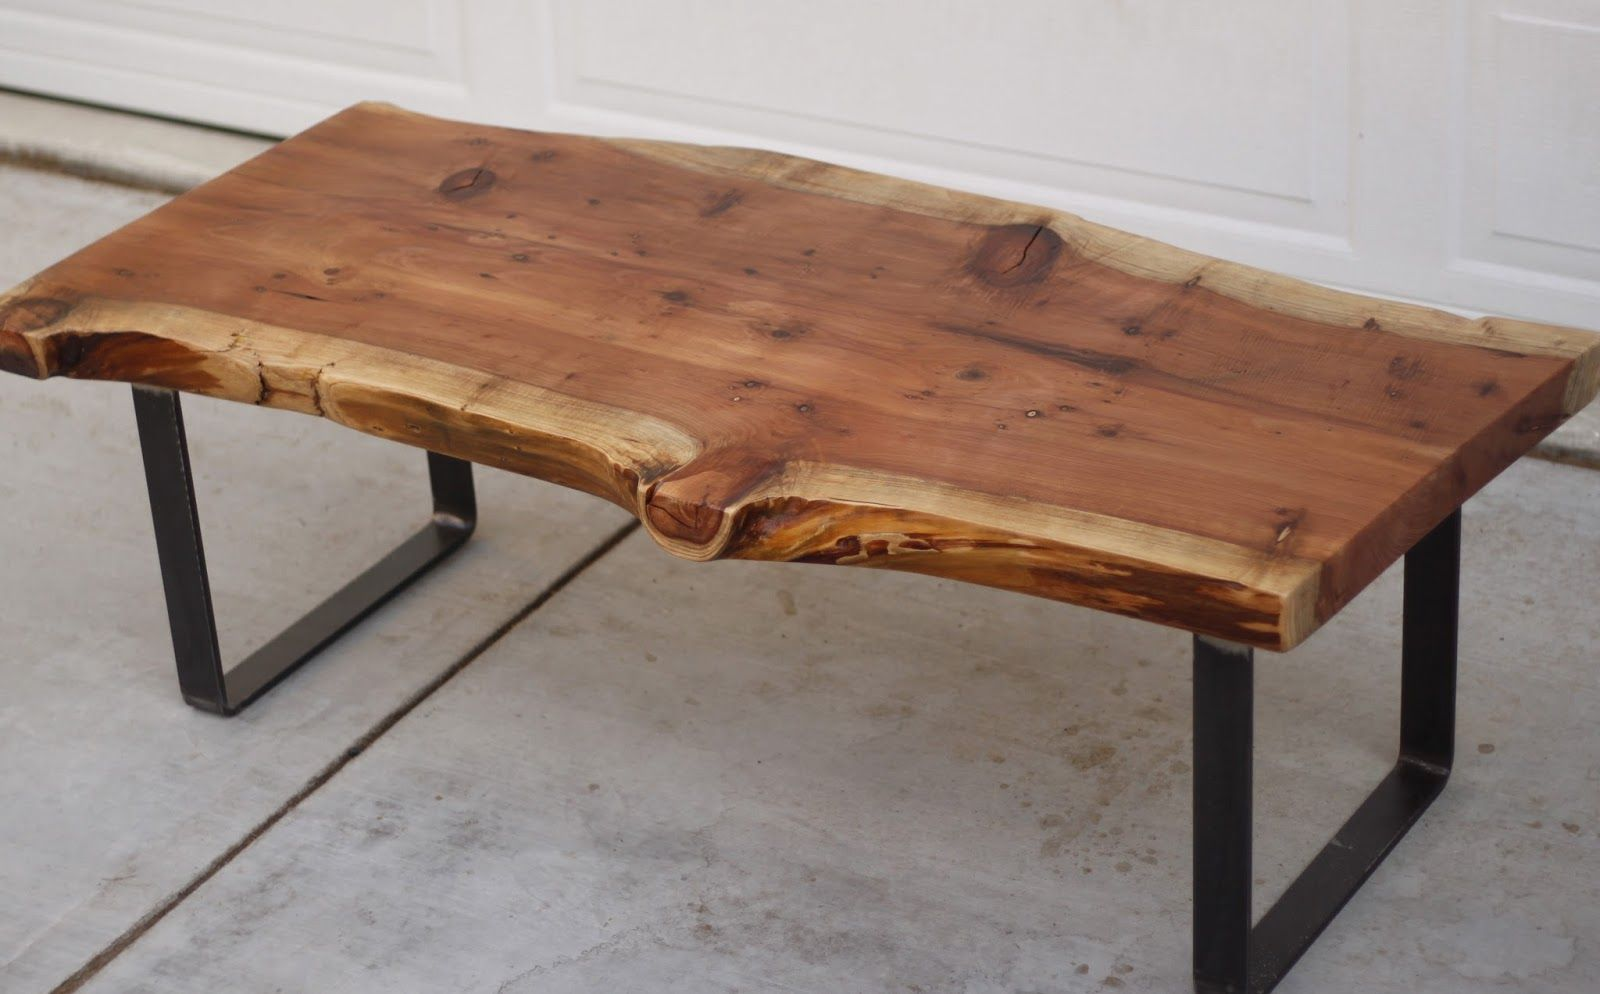 Bon Arbor Exchange | Reclaimed Wood Furniture: Redwood Slab Coffee Table